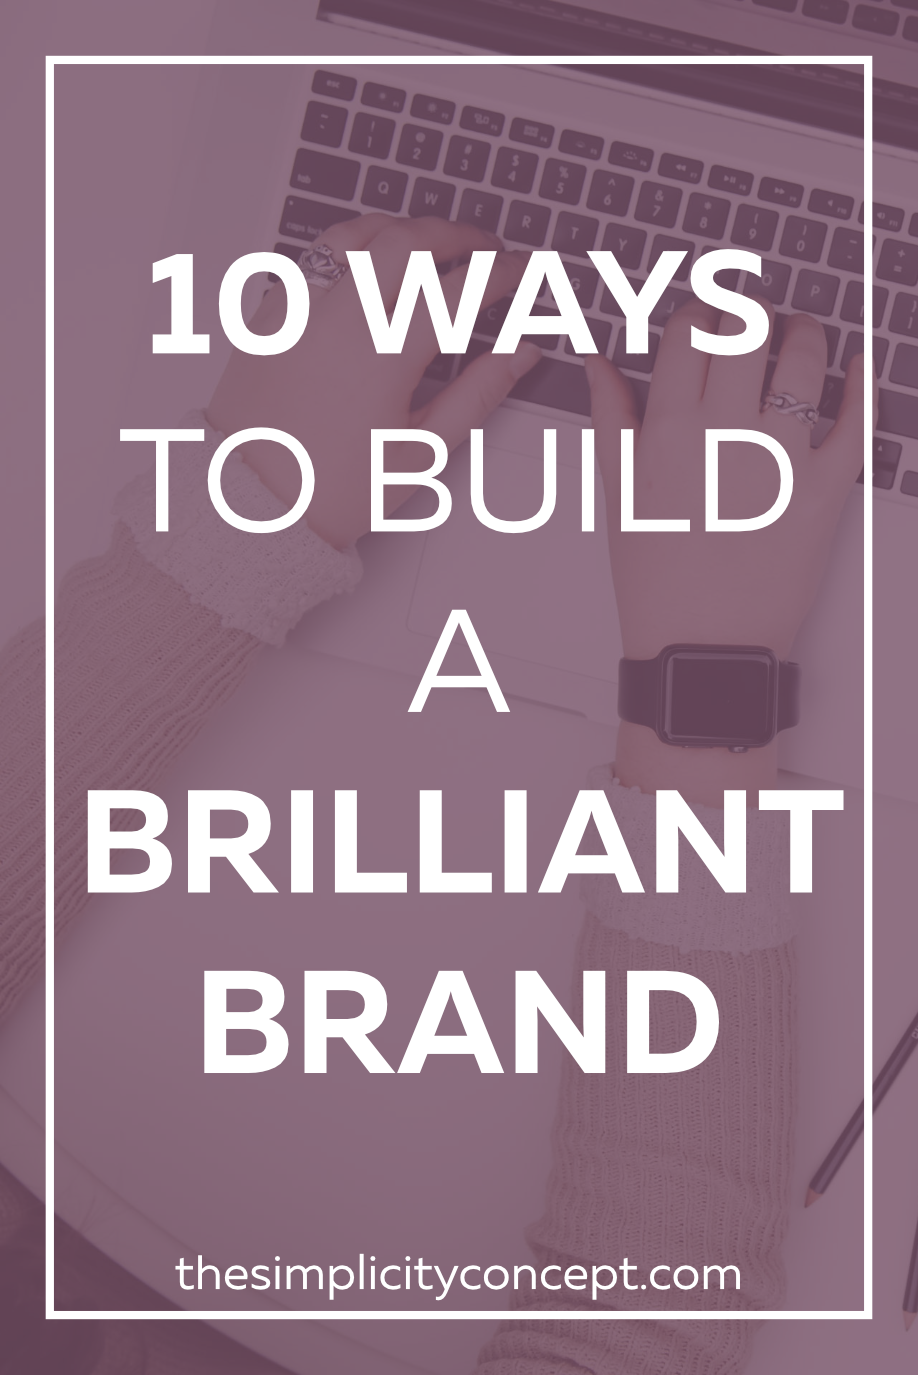 How to build a brilliant brand 10 tips from a marketing